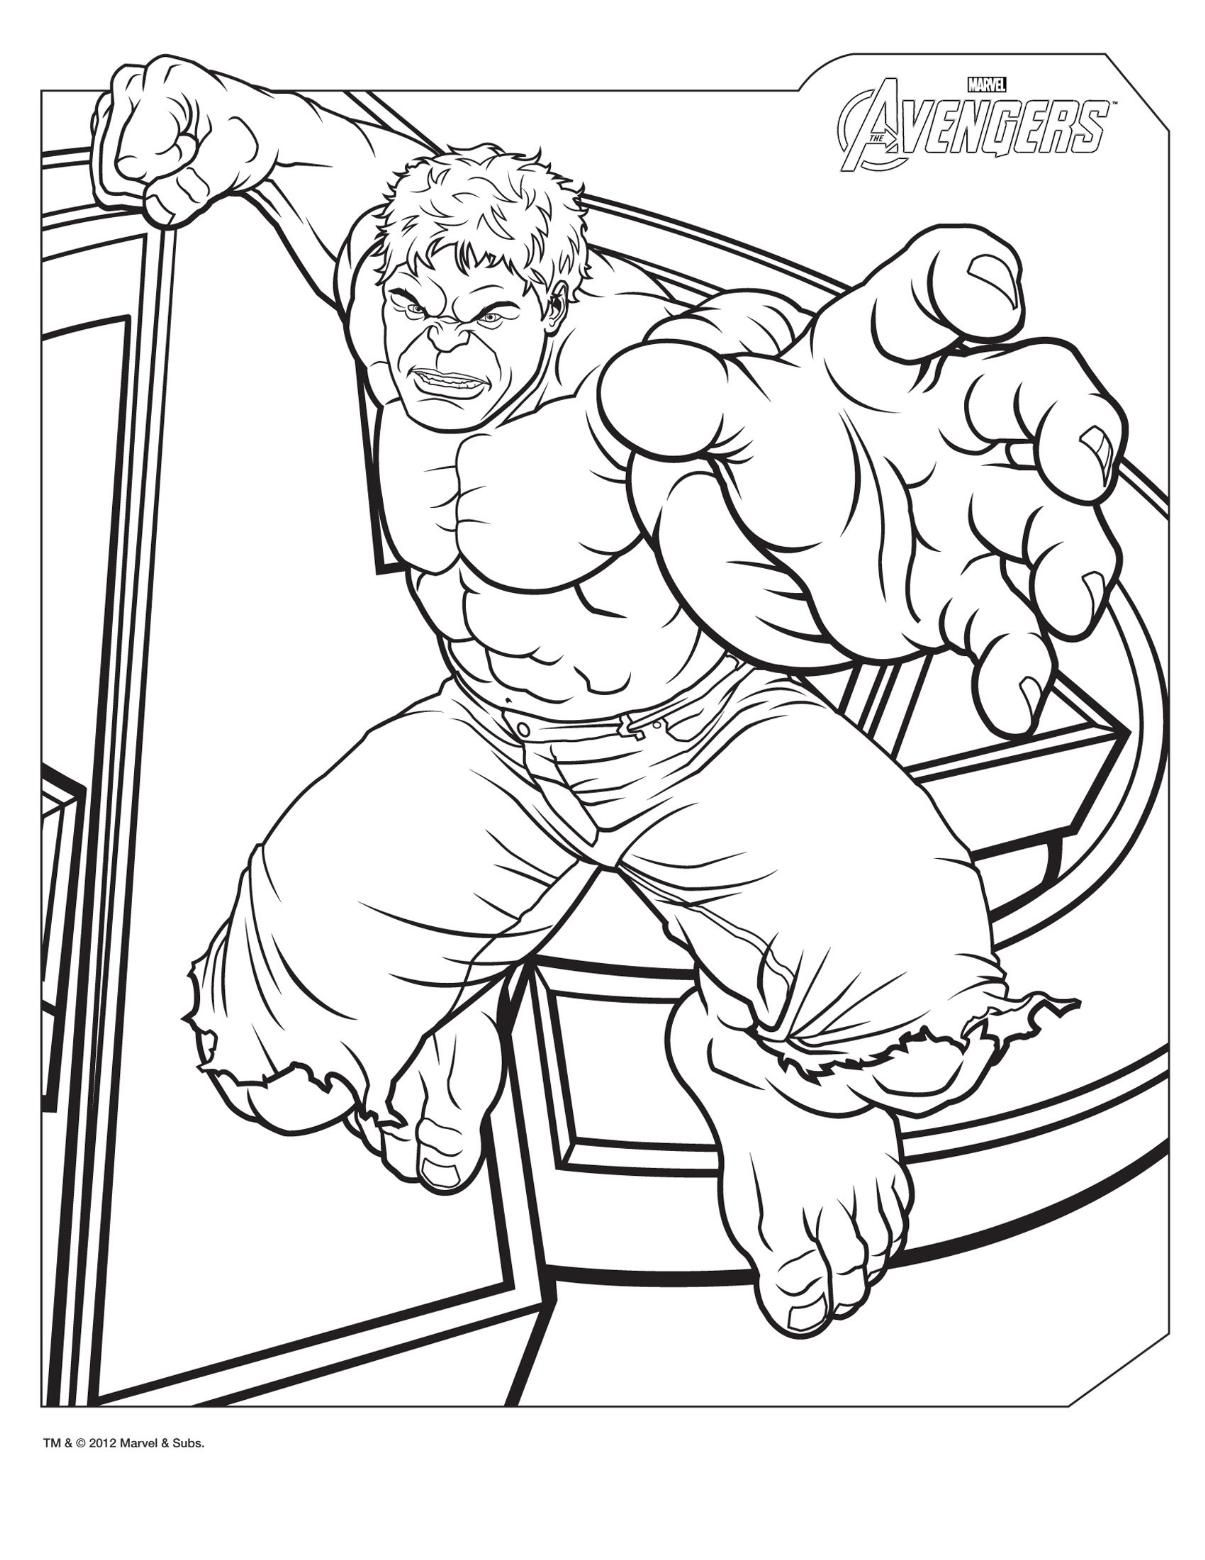 Free Printable Hulk Coloring Pages For Kids Avengers Coloring Pages Avengers Coloring Marvel Coloring